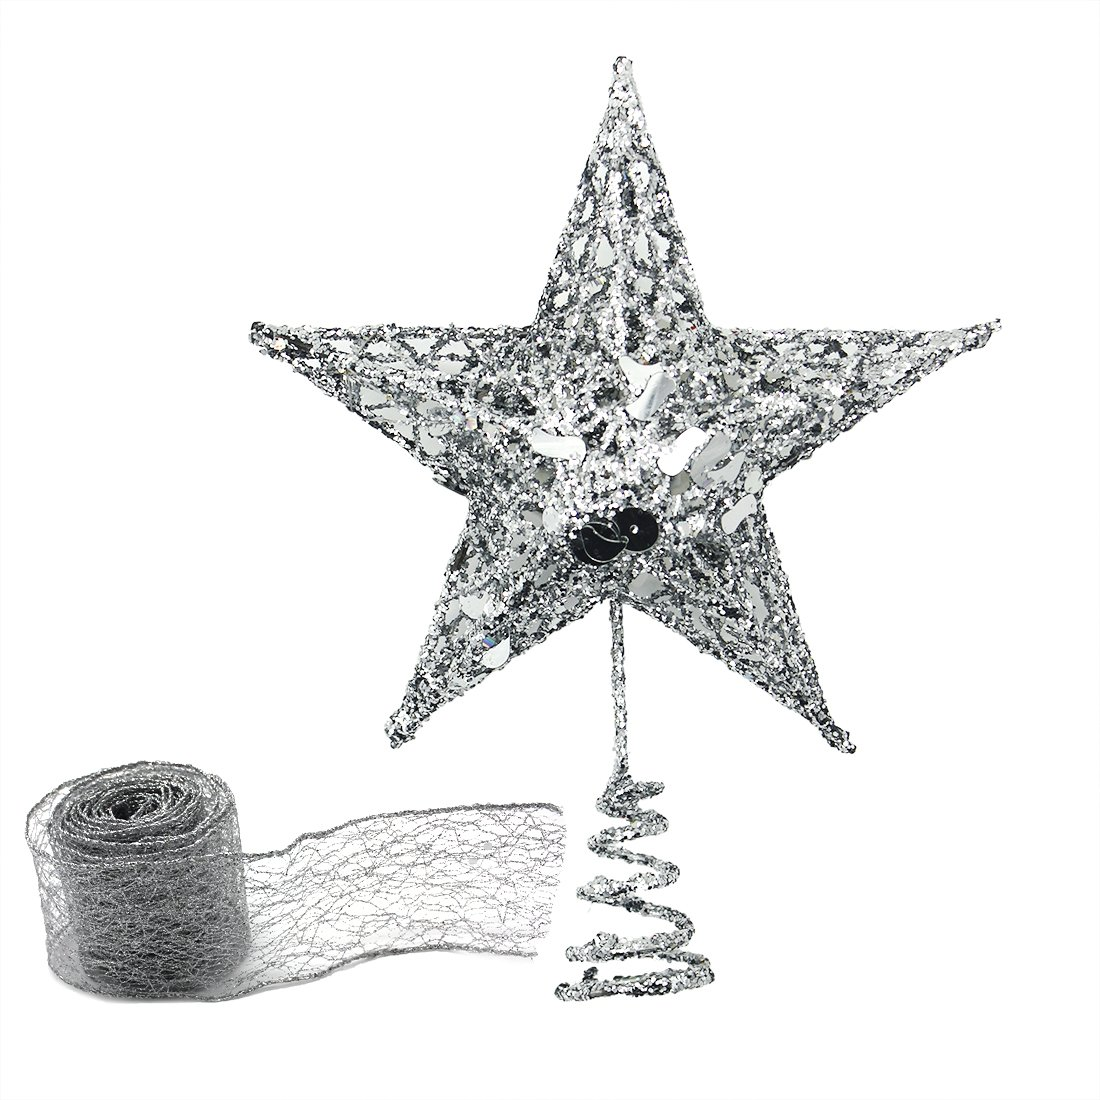 Shinybaby Christmas Sparkling Silver Star Tree Topper with 2 Meters Silver Ribbon for Festive Decor,8-inch x 6-inch(Silver)